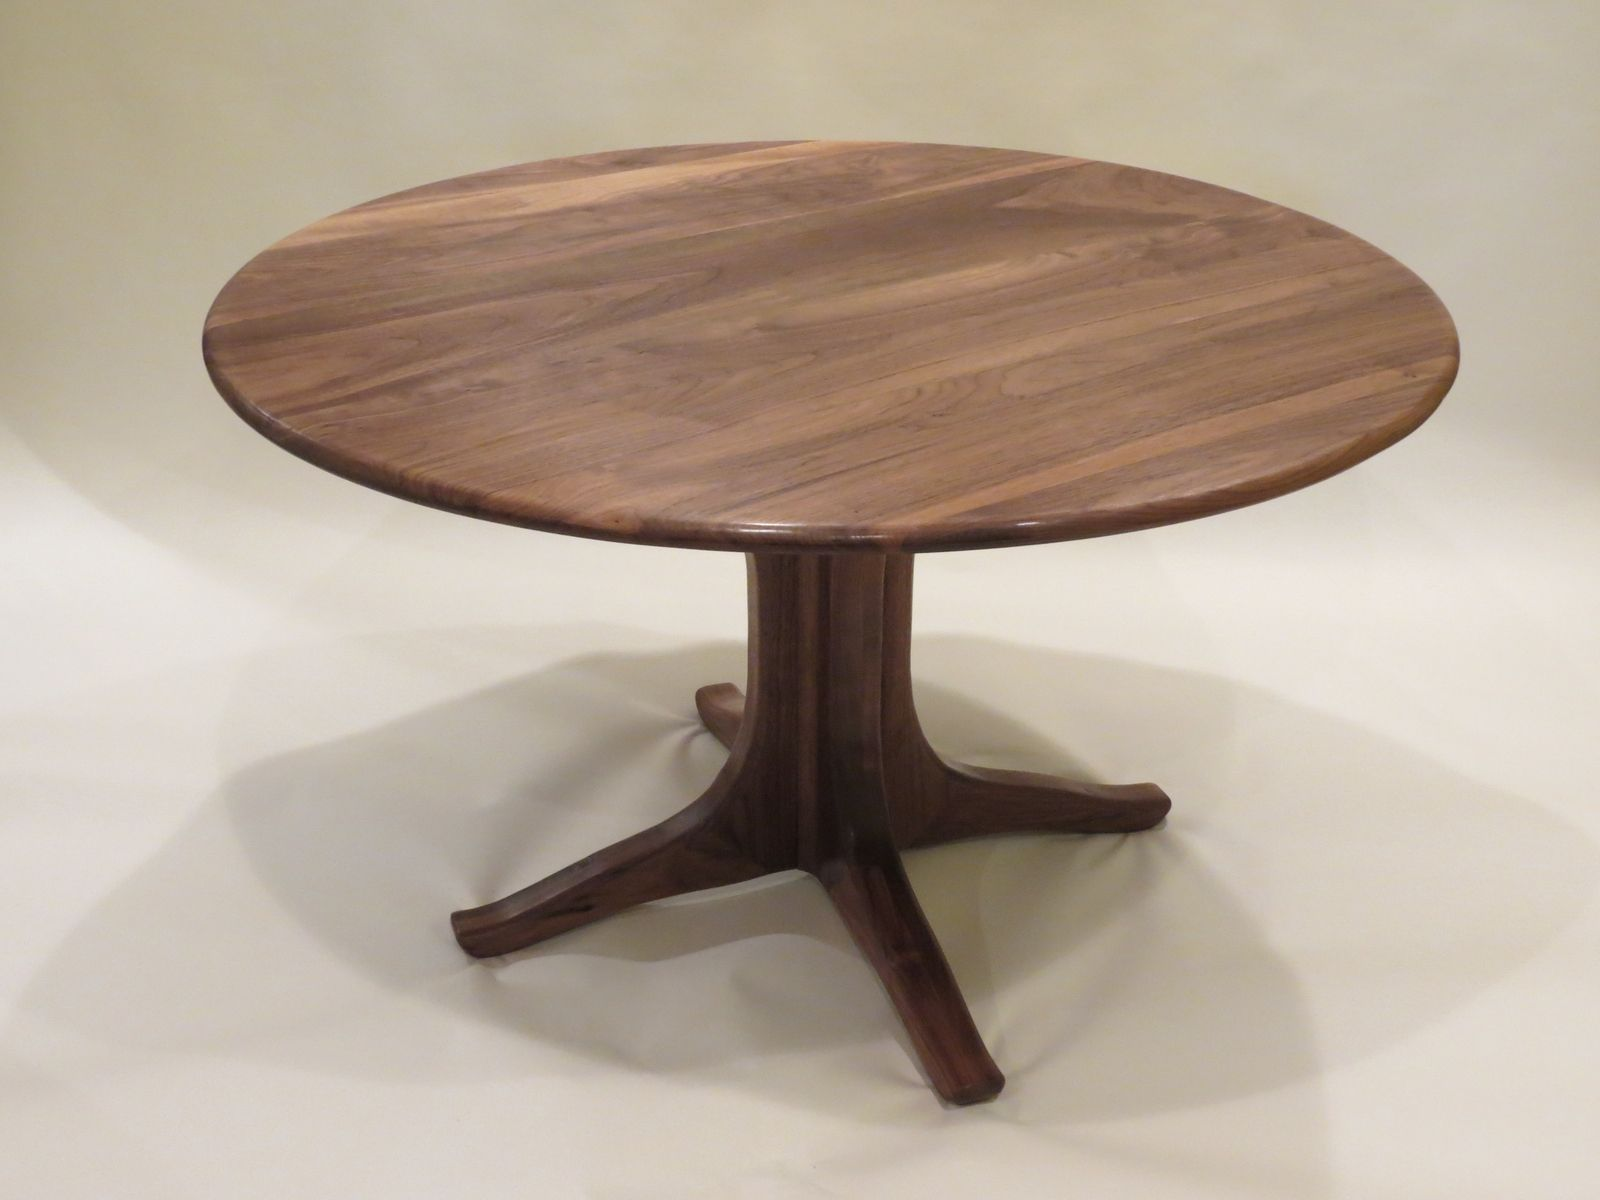 Walnut Pedestal Dining Table Pedestal Dining Table Round Table